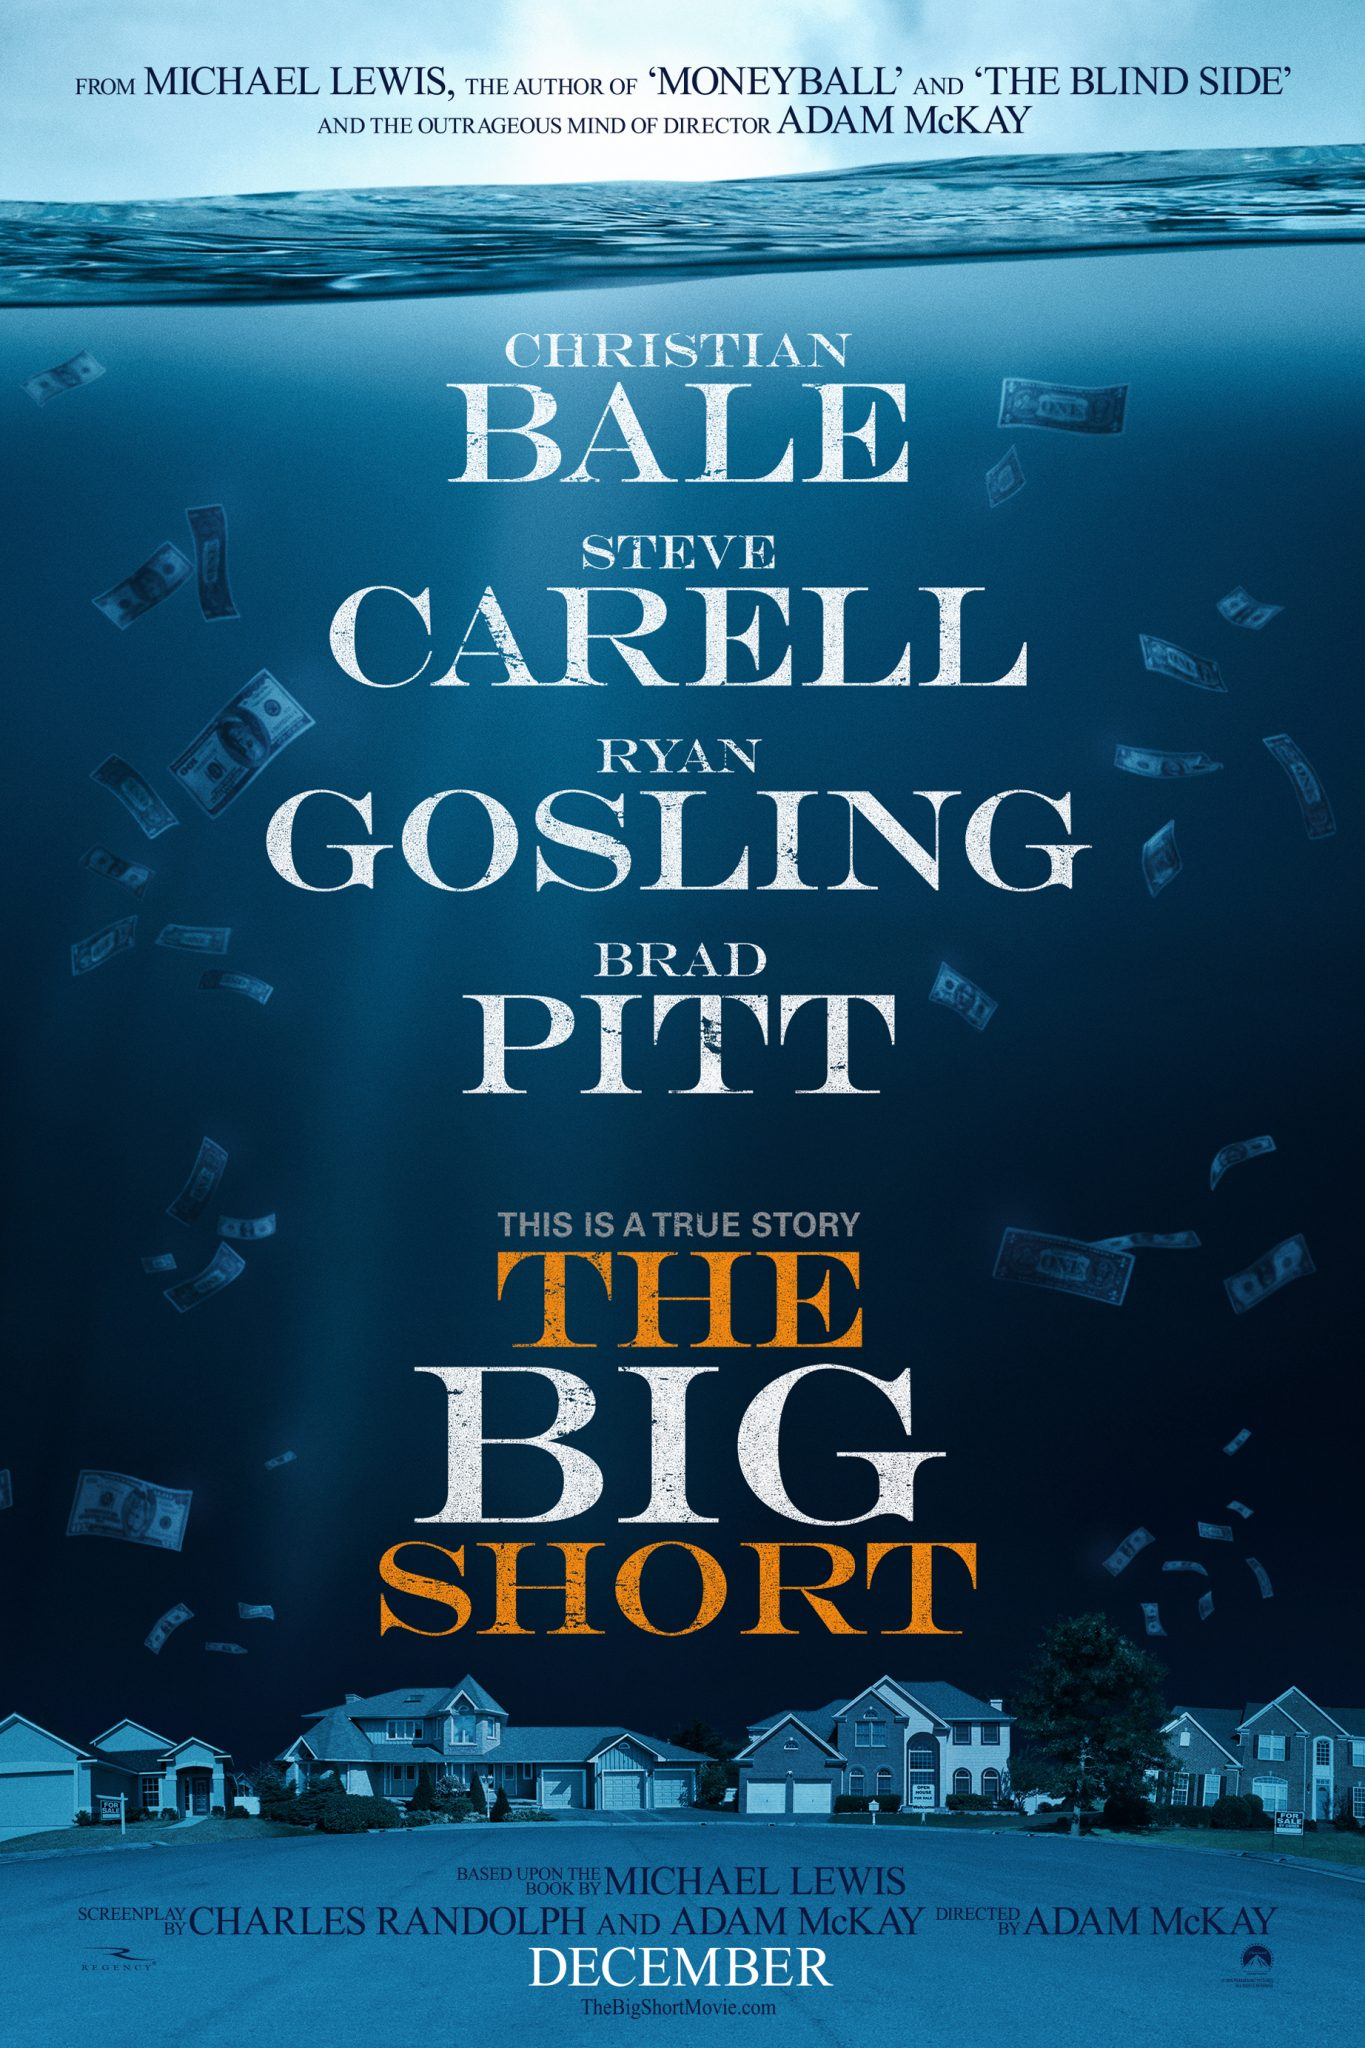 Value investing lessons from the Big Short (film) - Part II